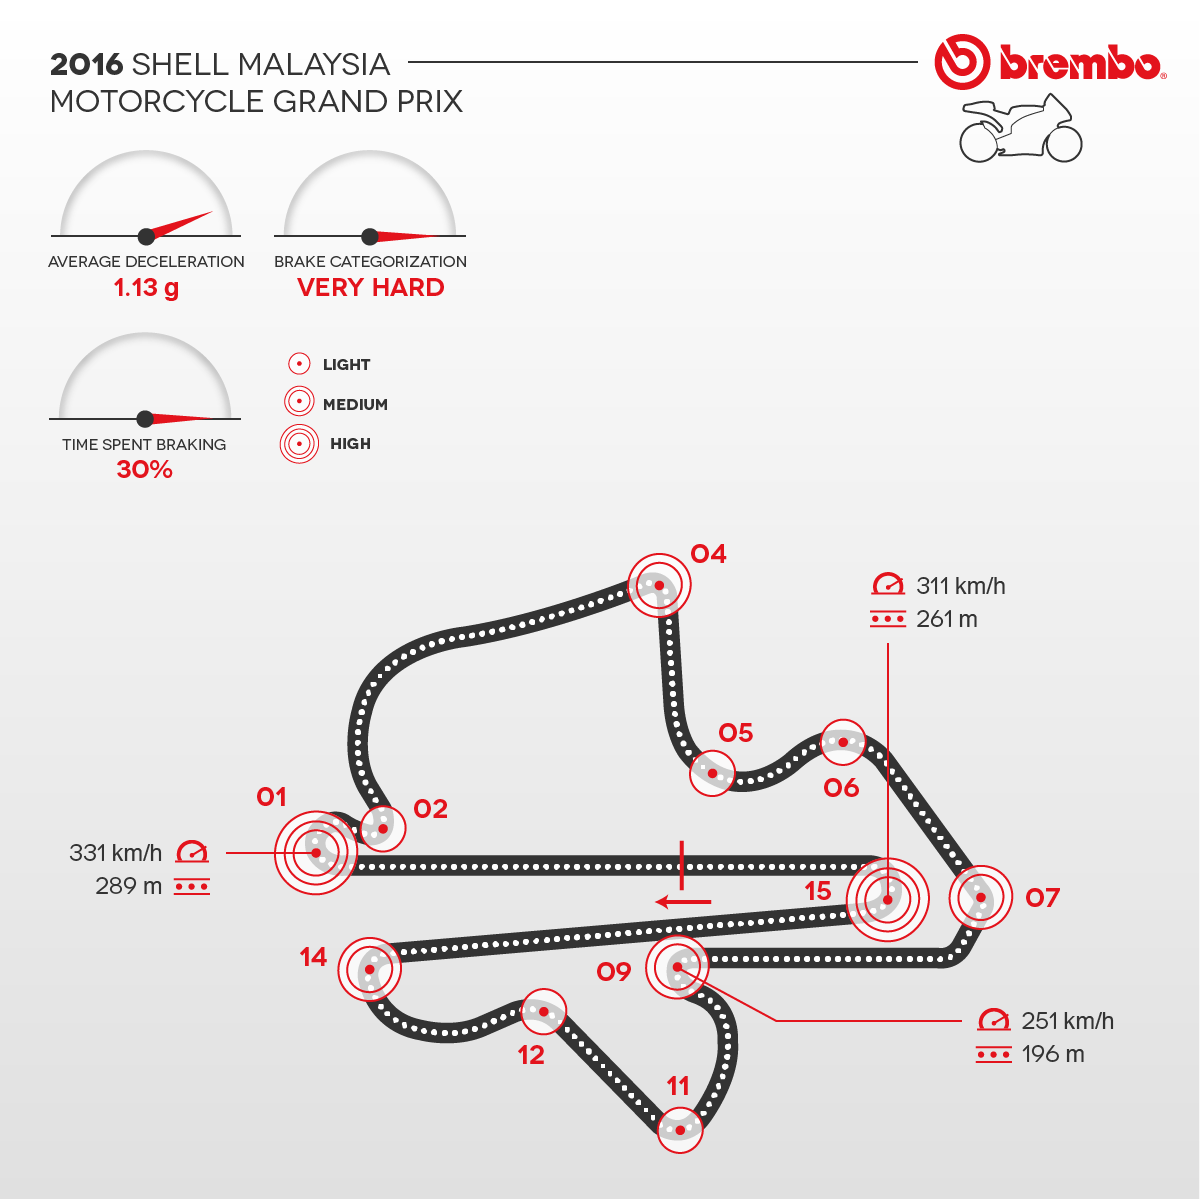 Motogp 2016 The Malaysia Gp According To Brembo Official Moto G Circuit Diagram Detailed Representation Of With Curves Detail